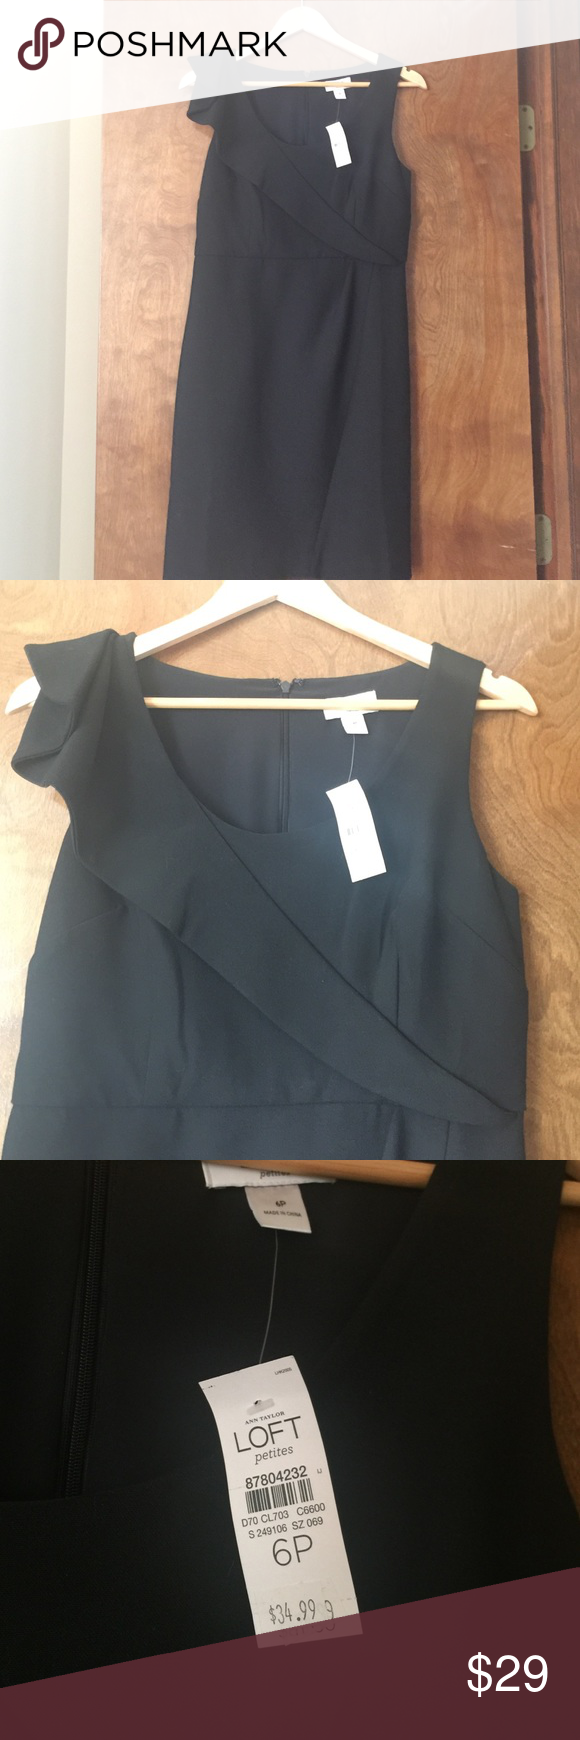 ✨NEW PRICE✨ LOFT Little Black Dress NWT size 6P Fitted sleeveless with shoulder ruffle detail. Zip back. LOFT Dresses